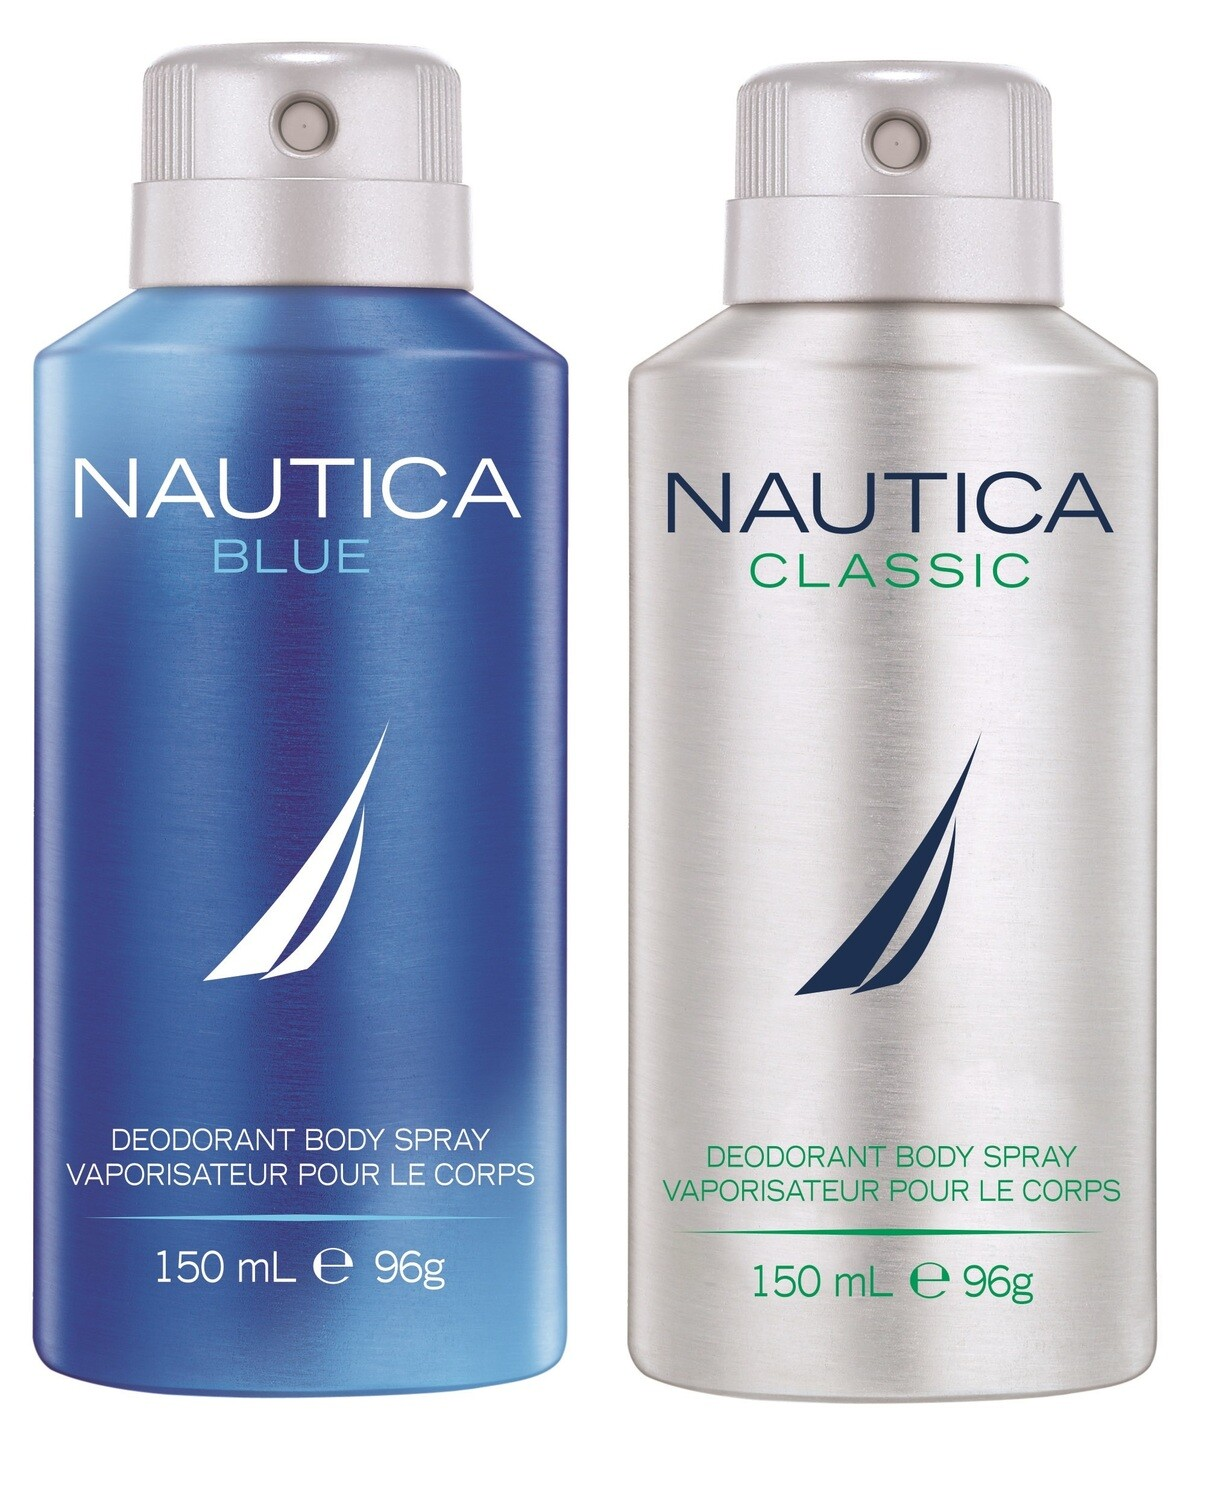 Nautica Voyage + Voyage Sport Deo Combo Set - Pack of 2